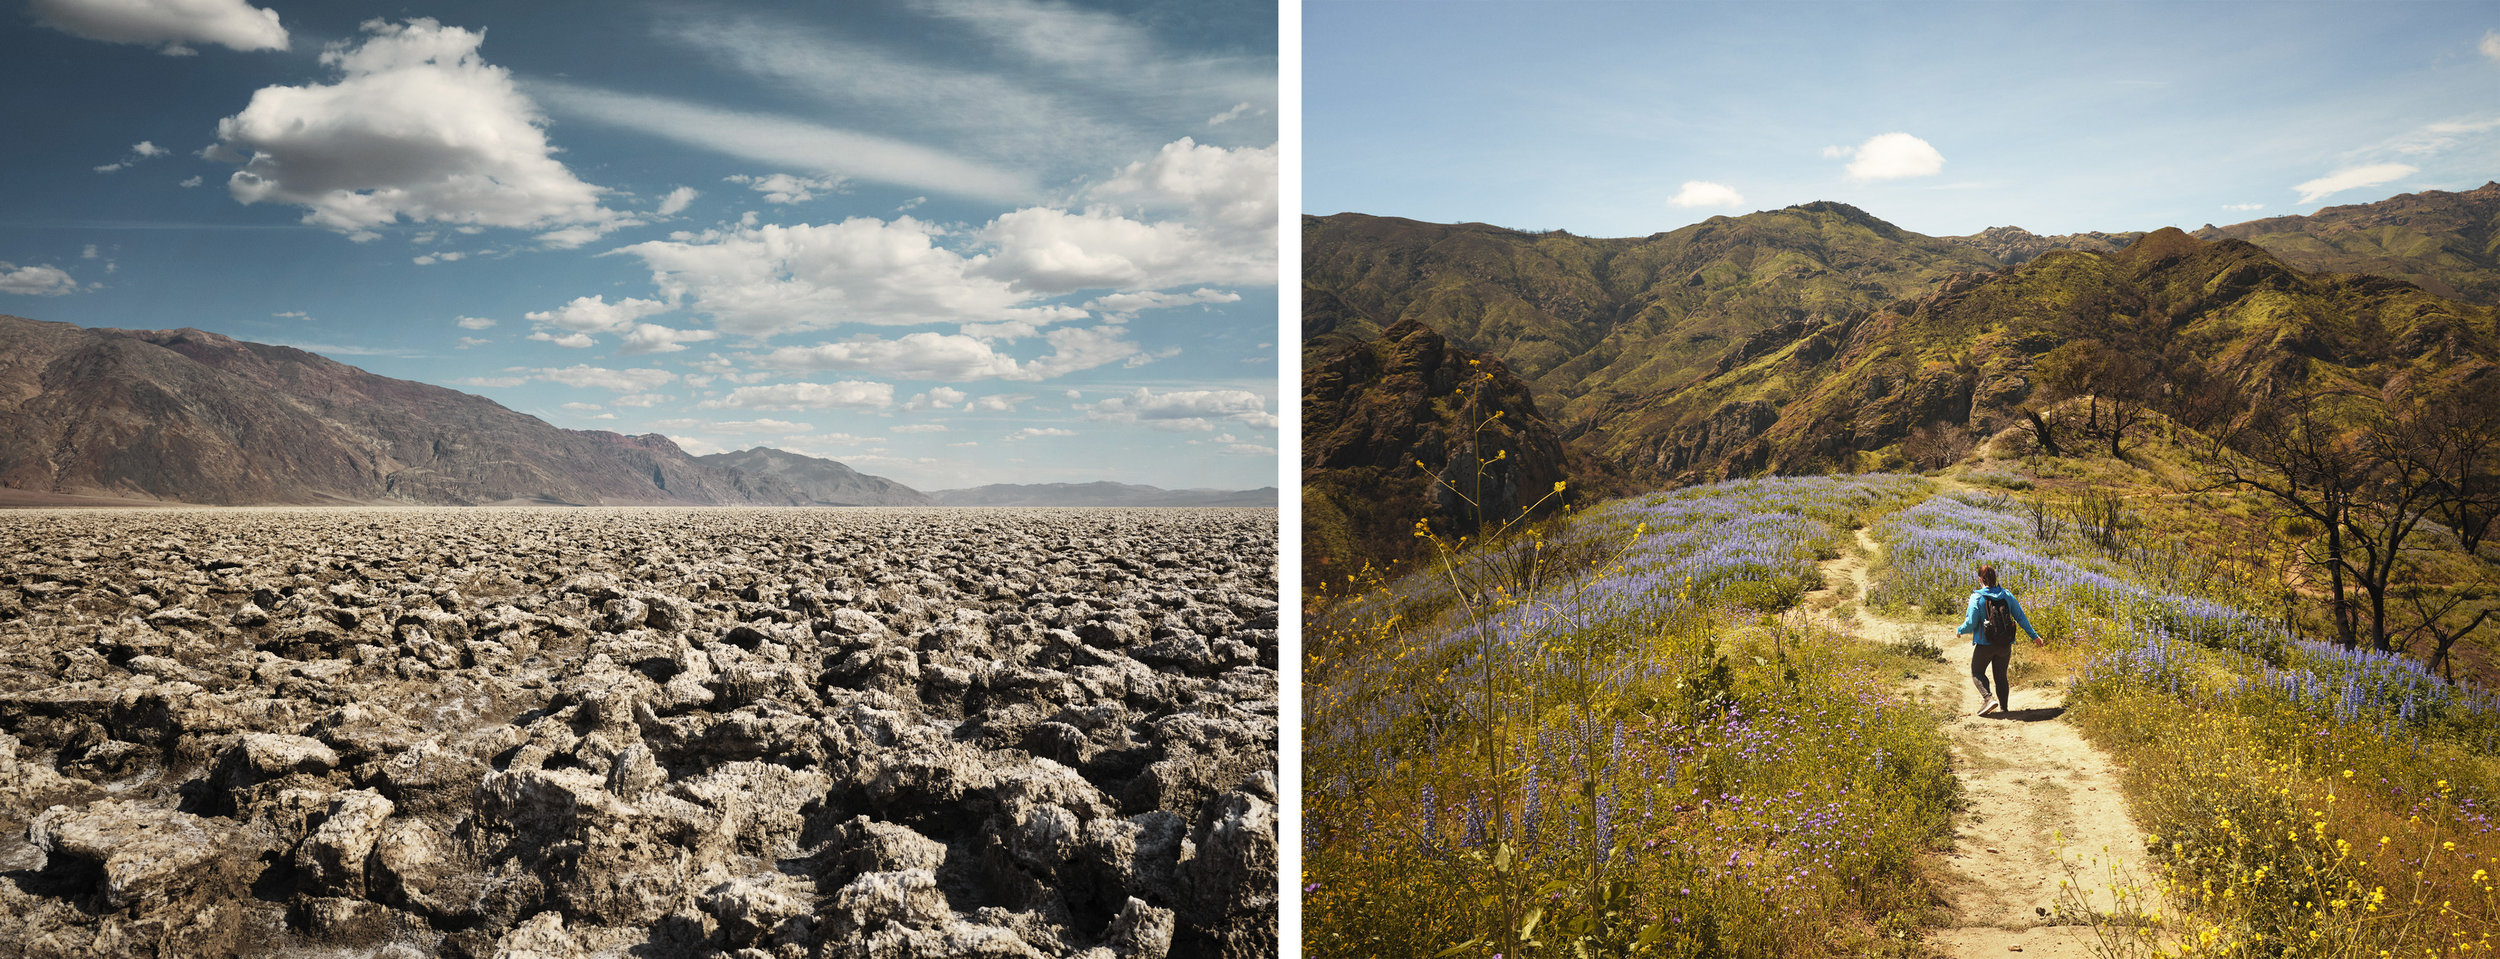 Left: Death Valley National Park, California, Right: Malibu Creek State Park, California